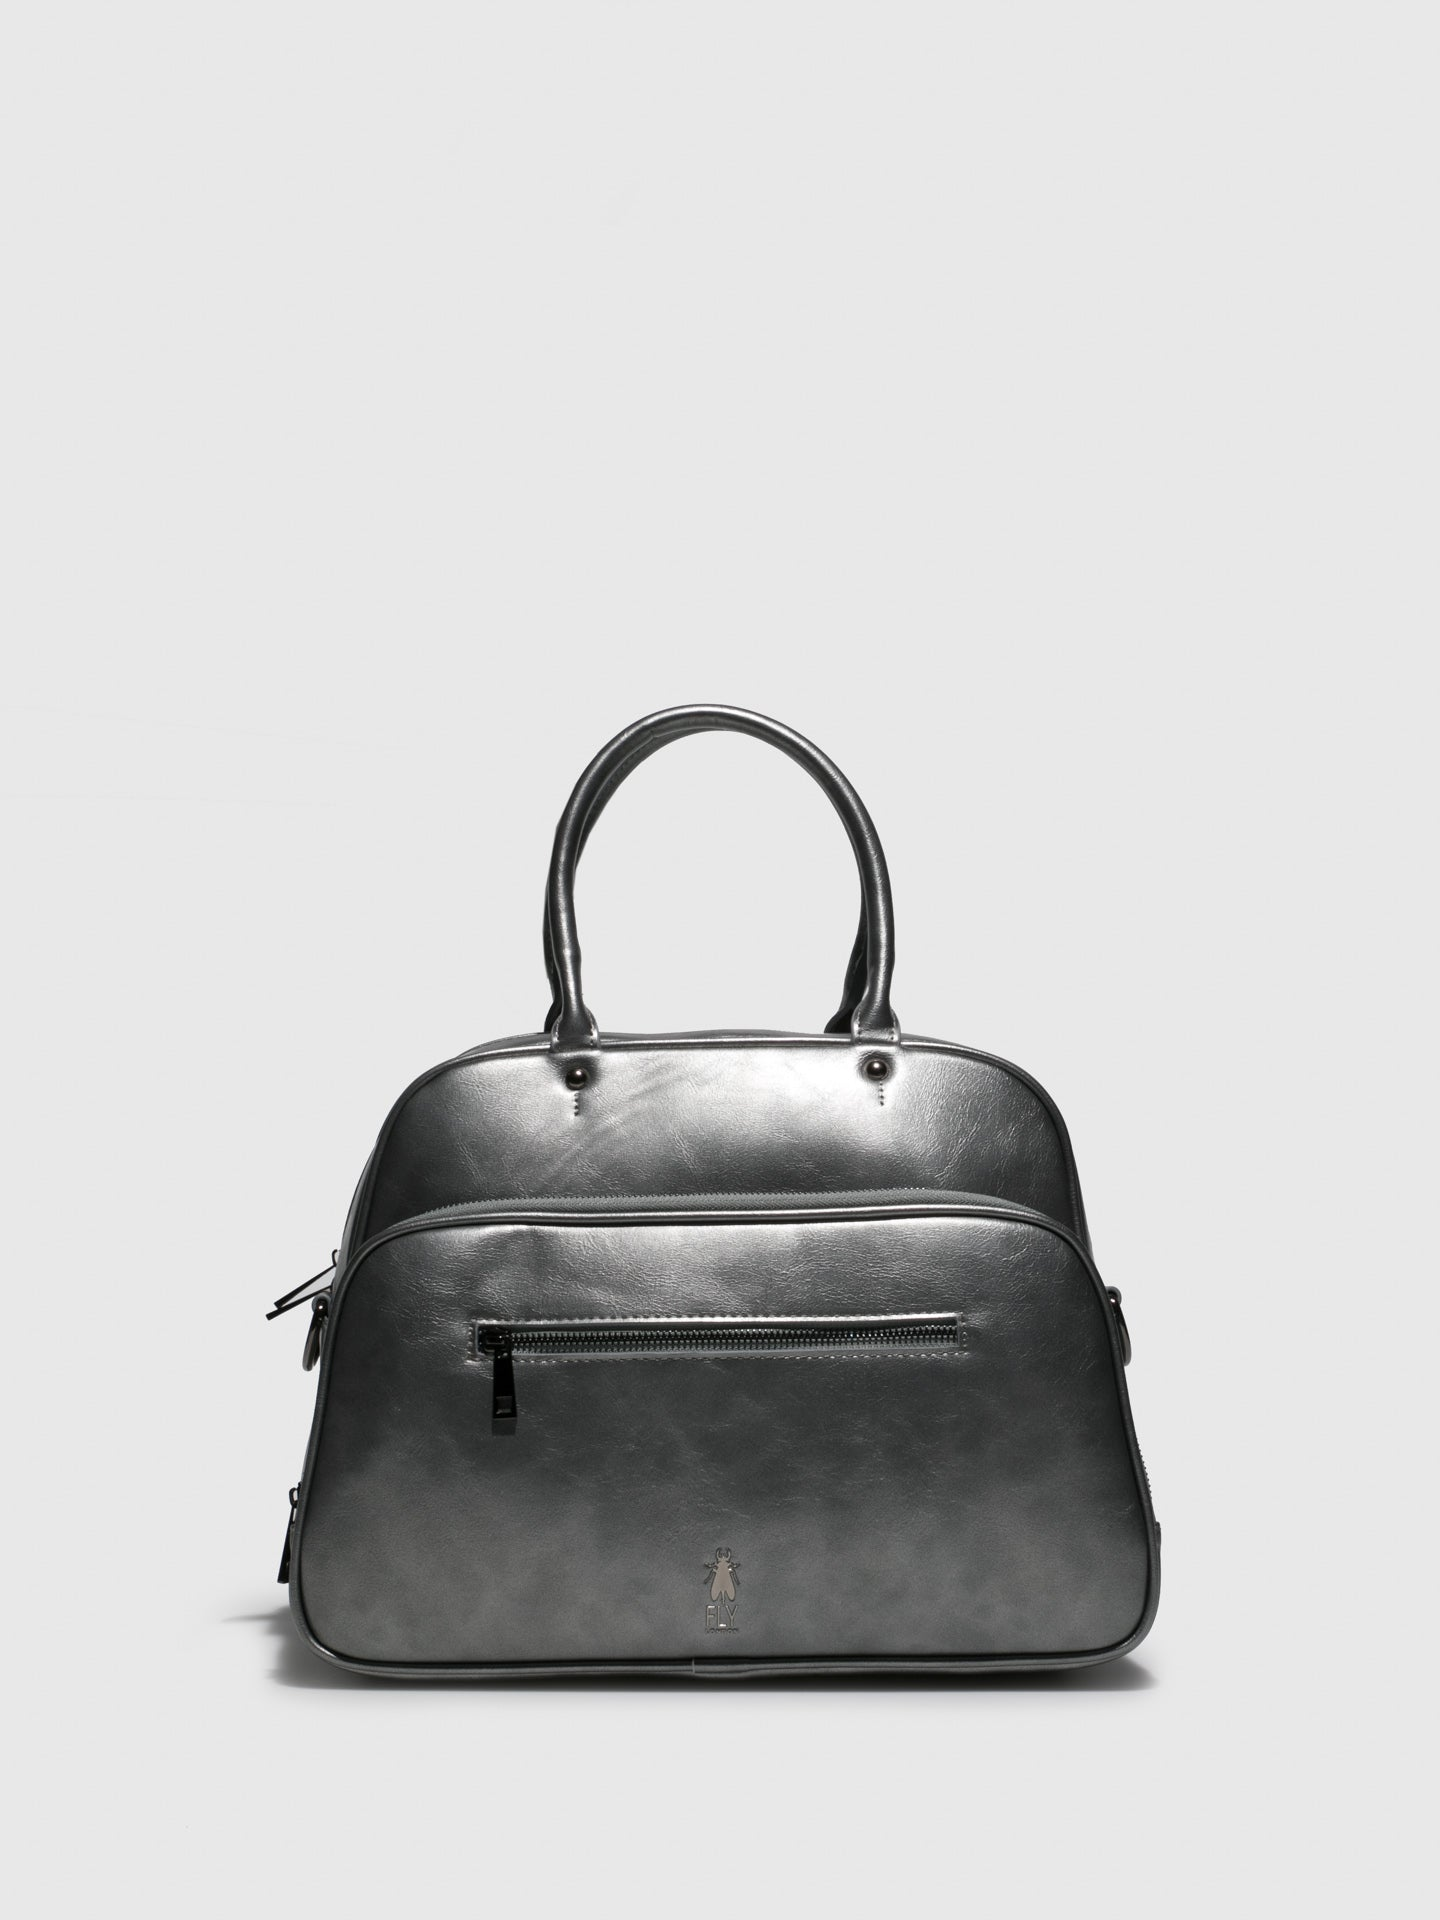 Fly London Gray Handbag